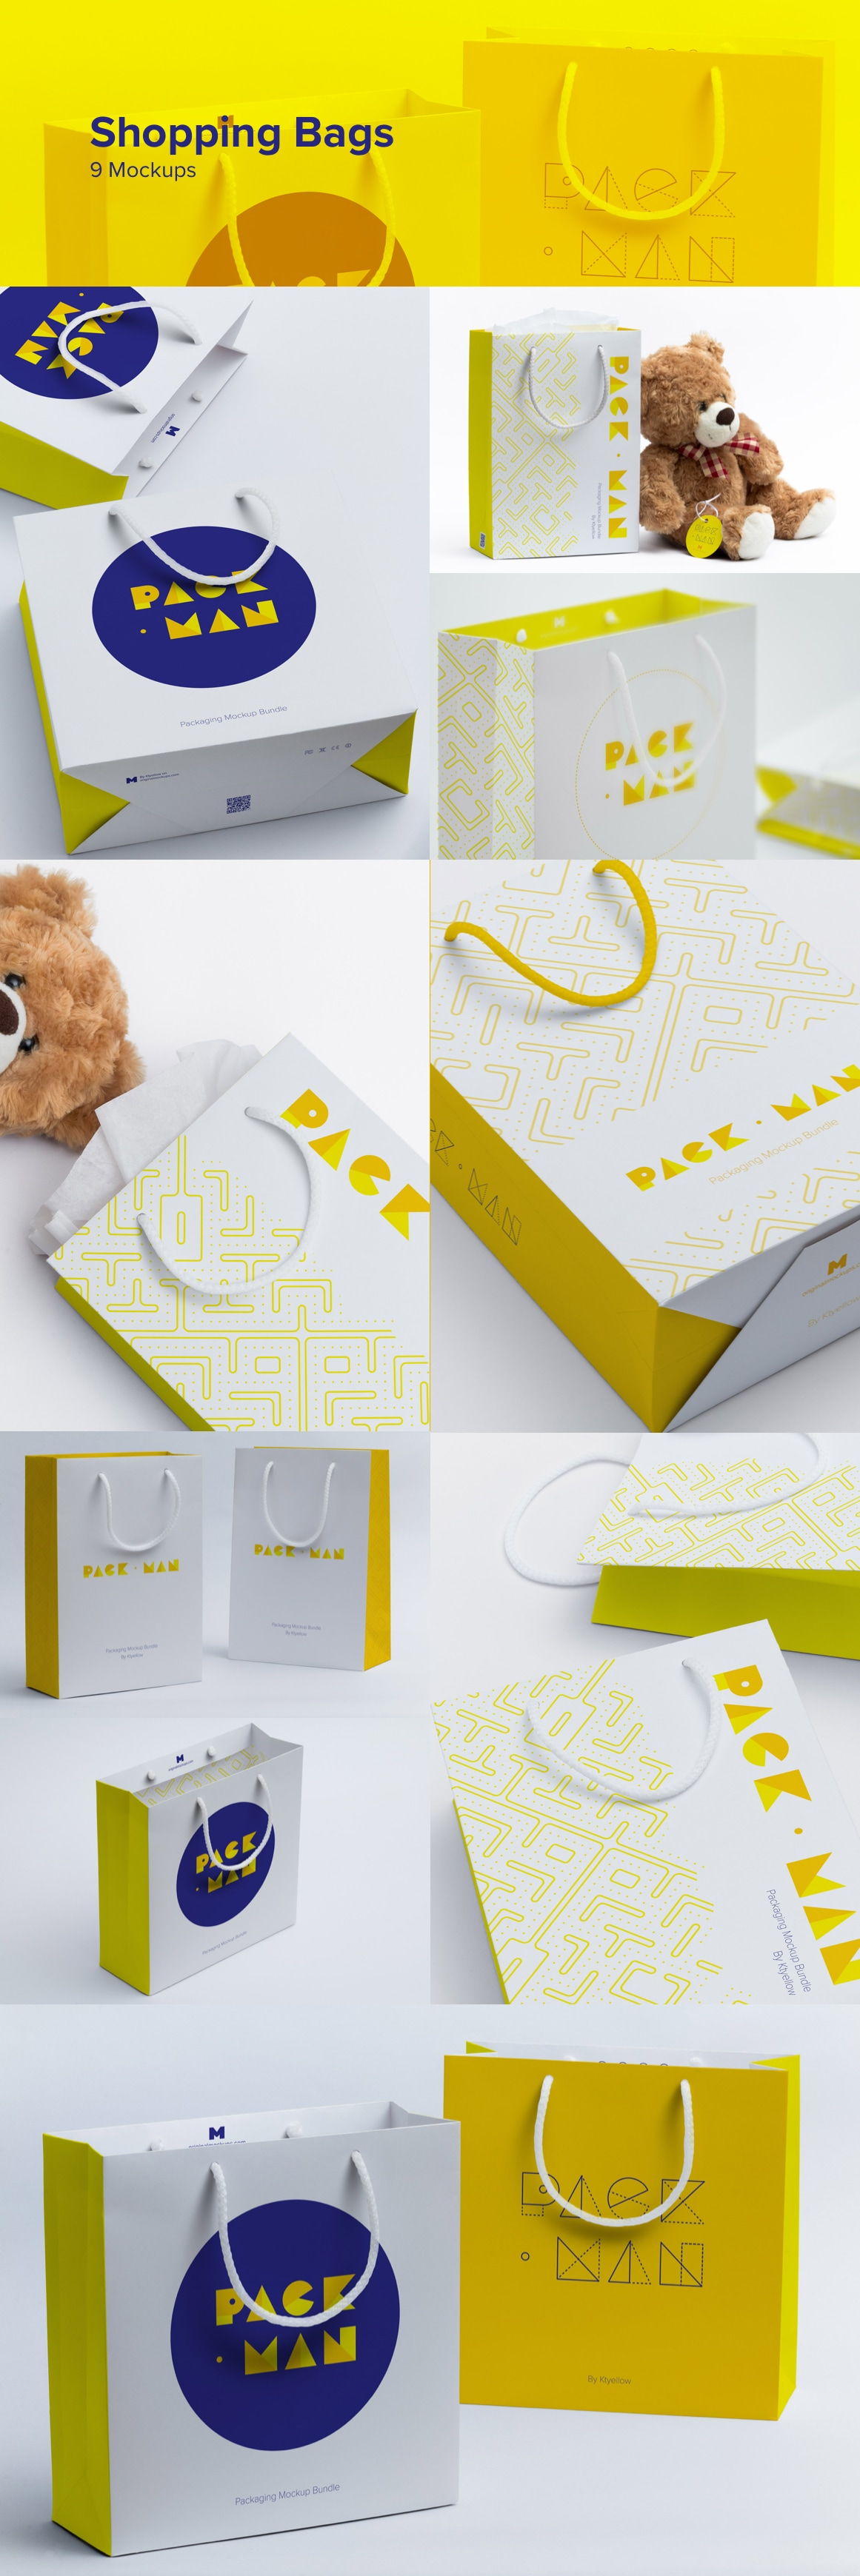 Packman Mockup Bundle